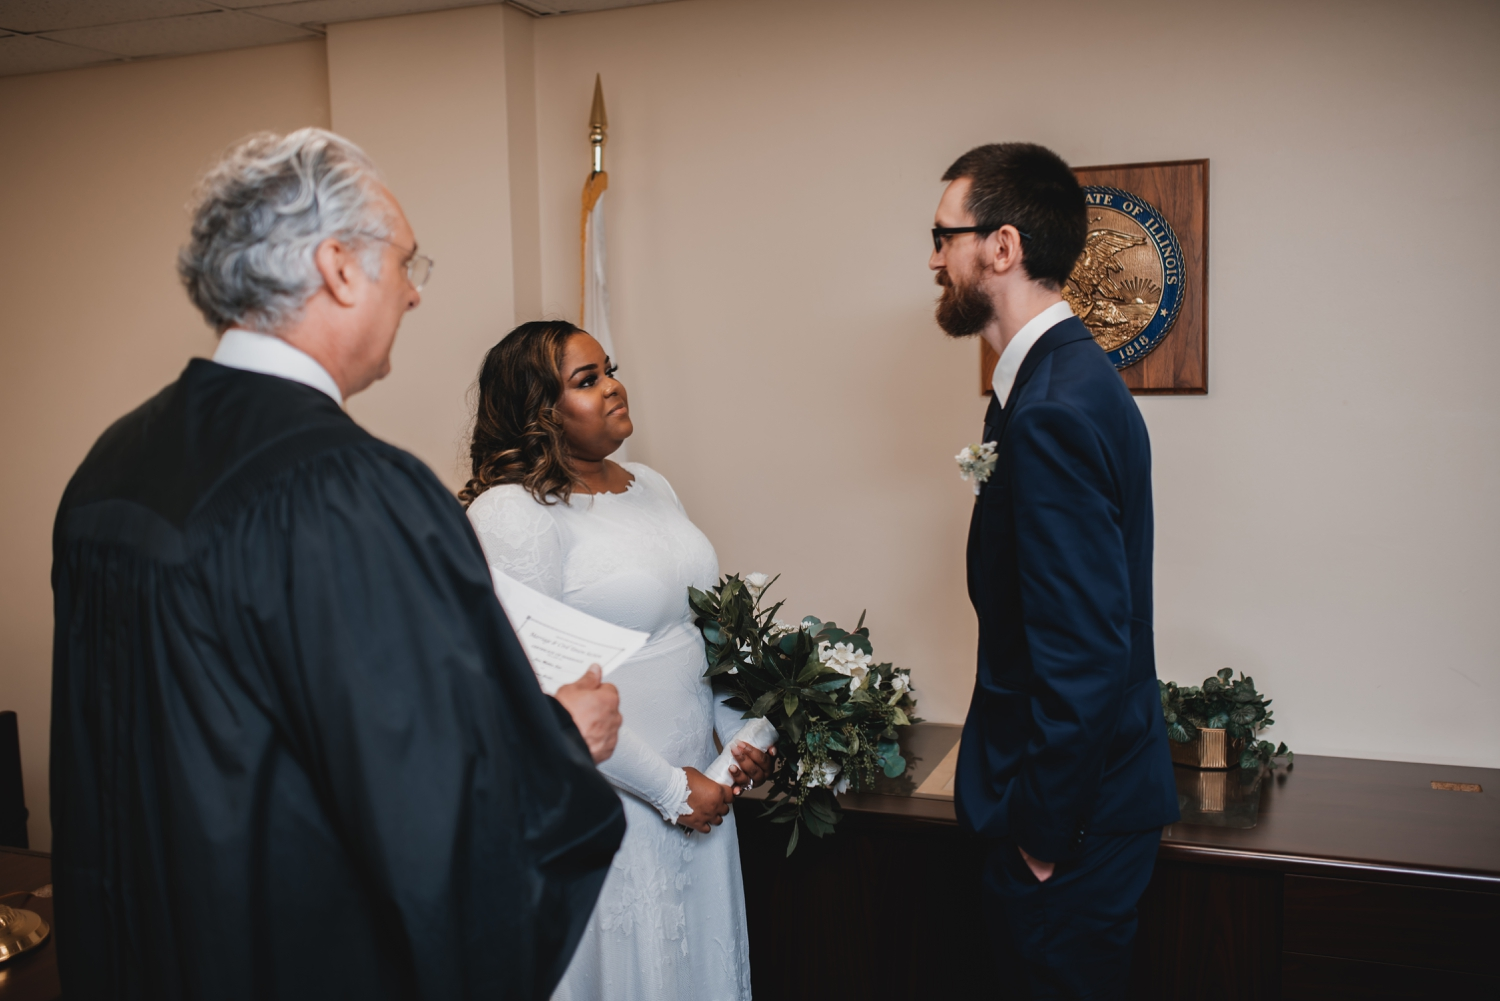 Chicago Elopement photographer - The Adamkovi, bride and groom in front of the judge